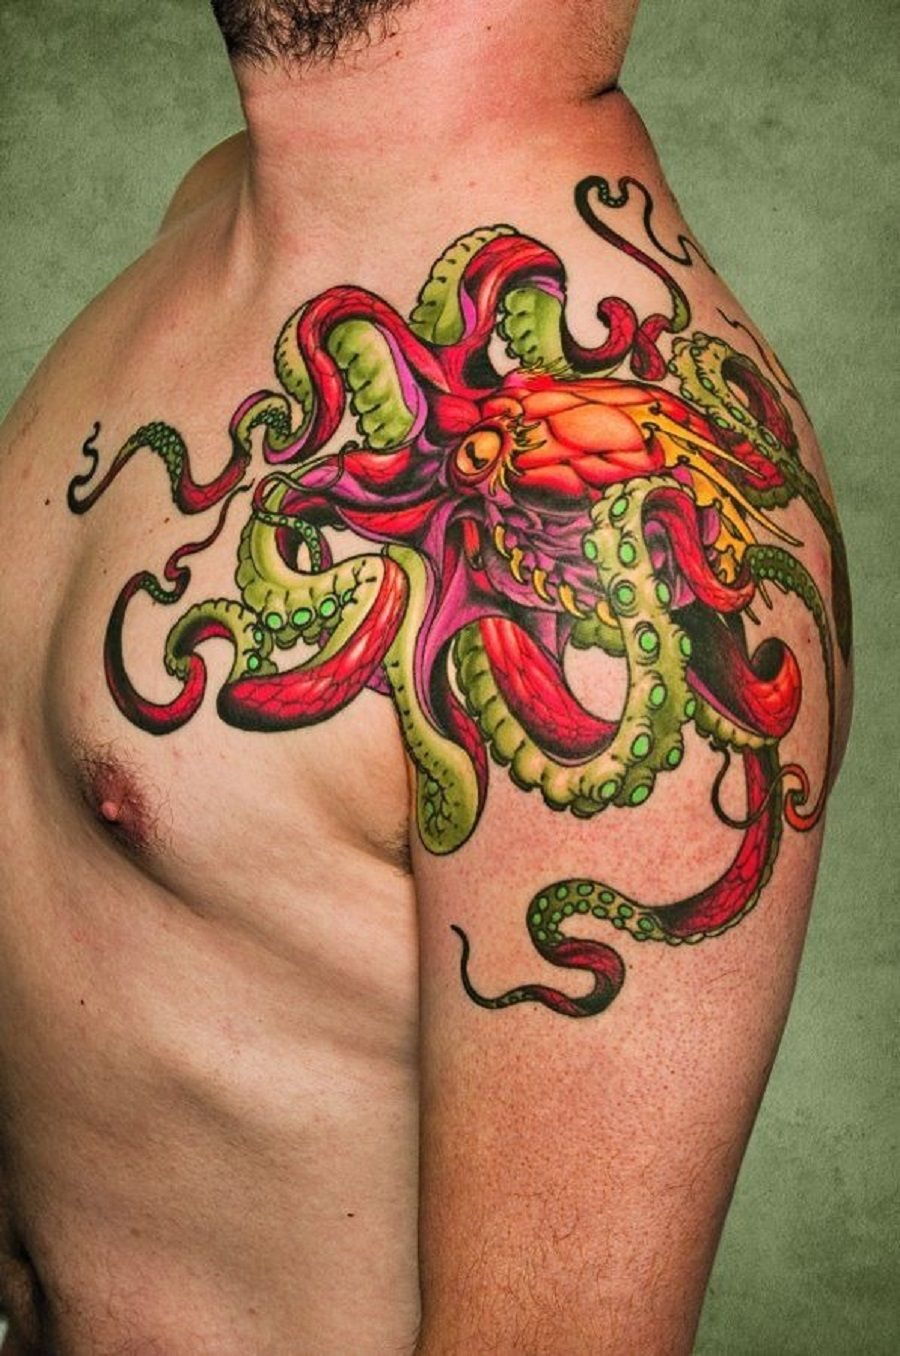 Tattoo ideas for men small arm big red and green octopus tattoo on the manu shoulder i reeeally